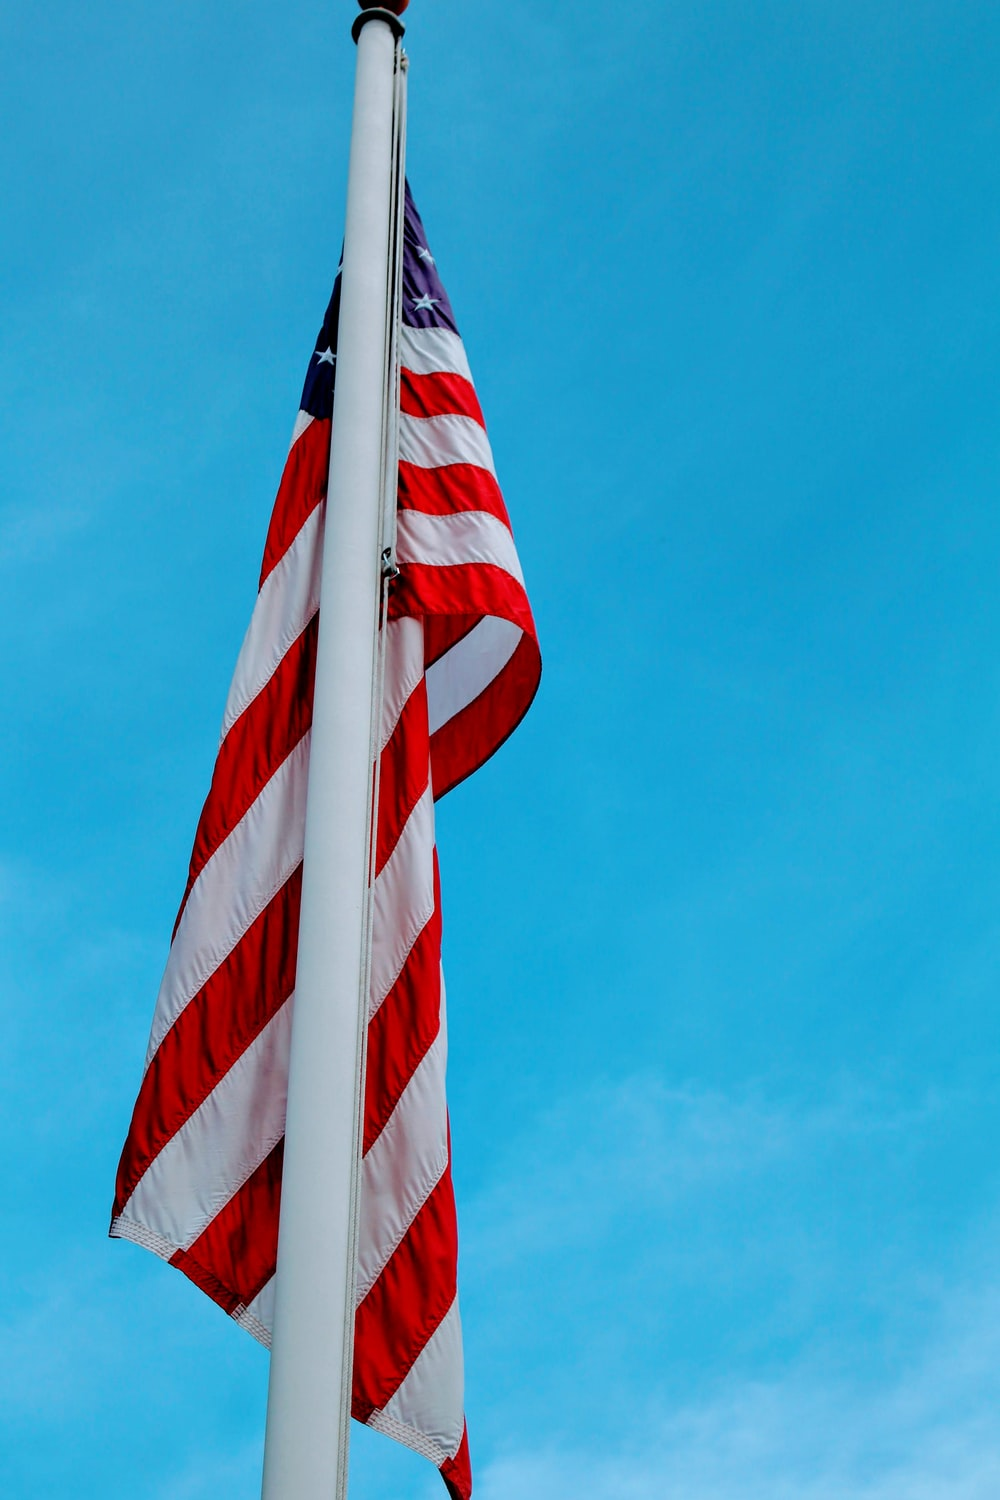 red and white striped flag